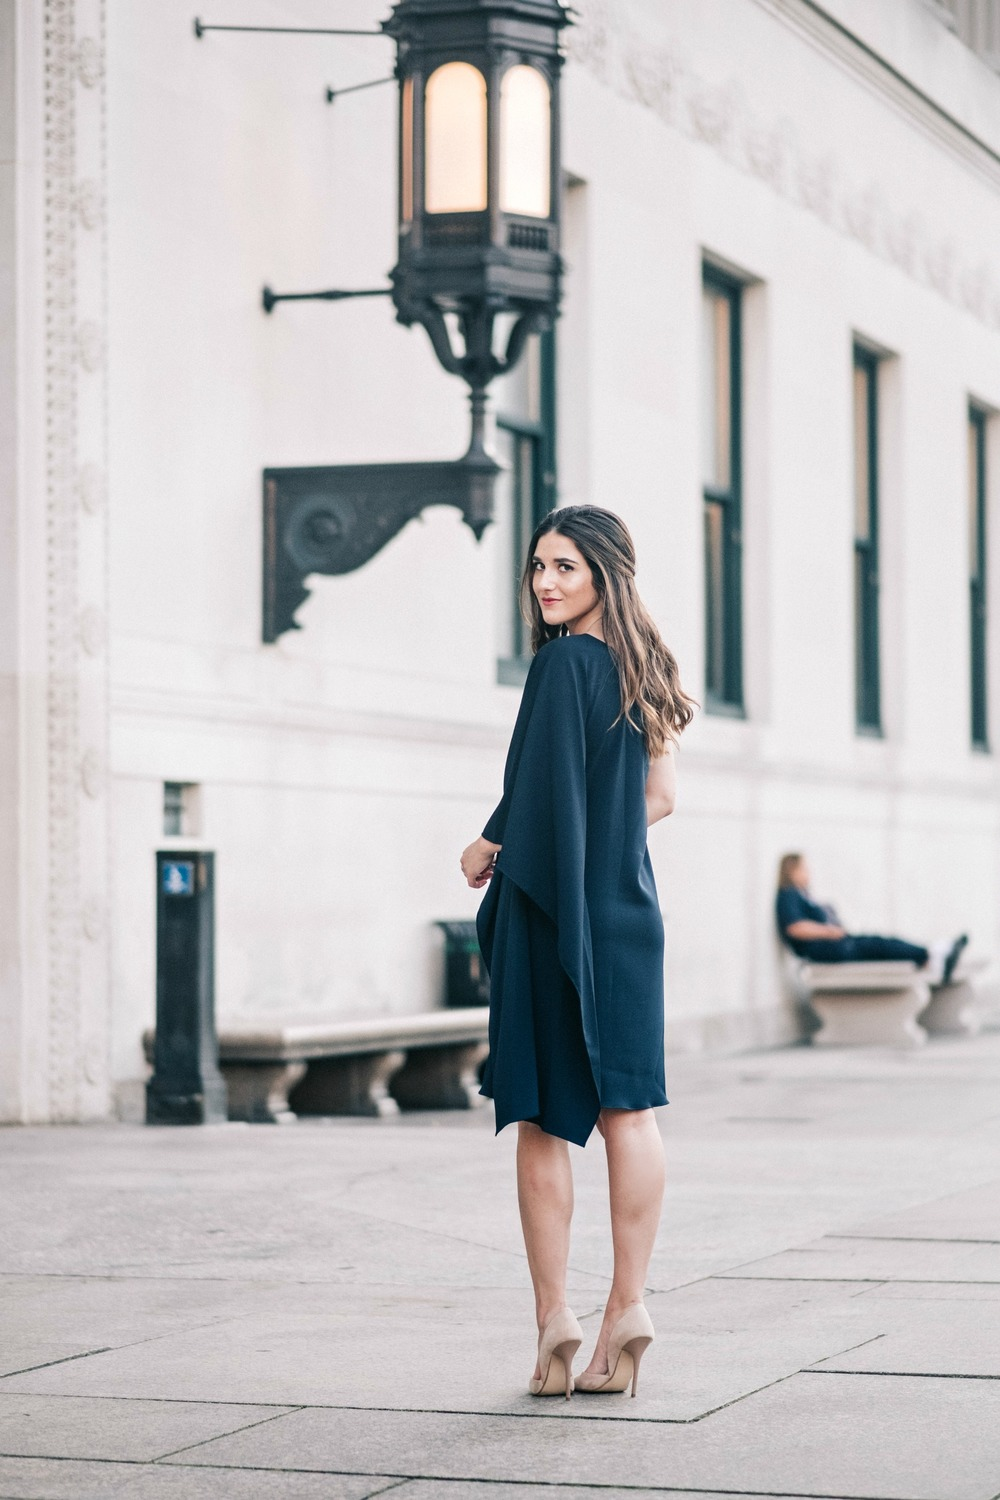 One Shoulder Dress Jay Godgrey Louboutins & Love Fashion Blog Esther Santer NYC Street Style Blogger Outfit OOTD Trendy Girl Women Elegant Fancy Attire Hair Inspo Photoshoot Nude Heels Steve Madden Navy Gold Jewelry Pretty Shopping Buy Shoes Beautiful.jpg